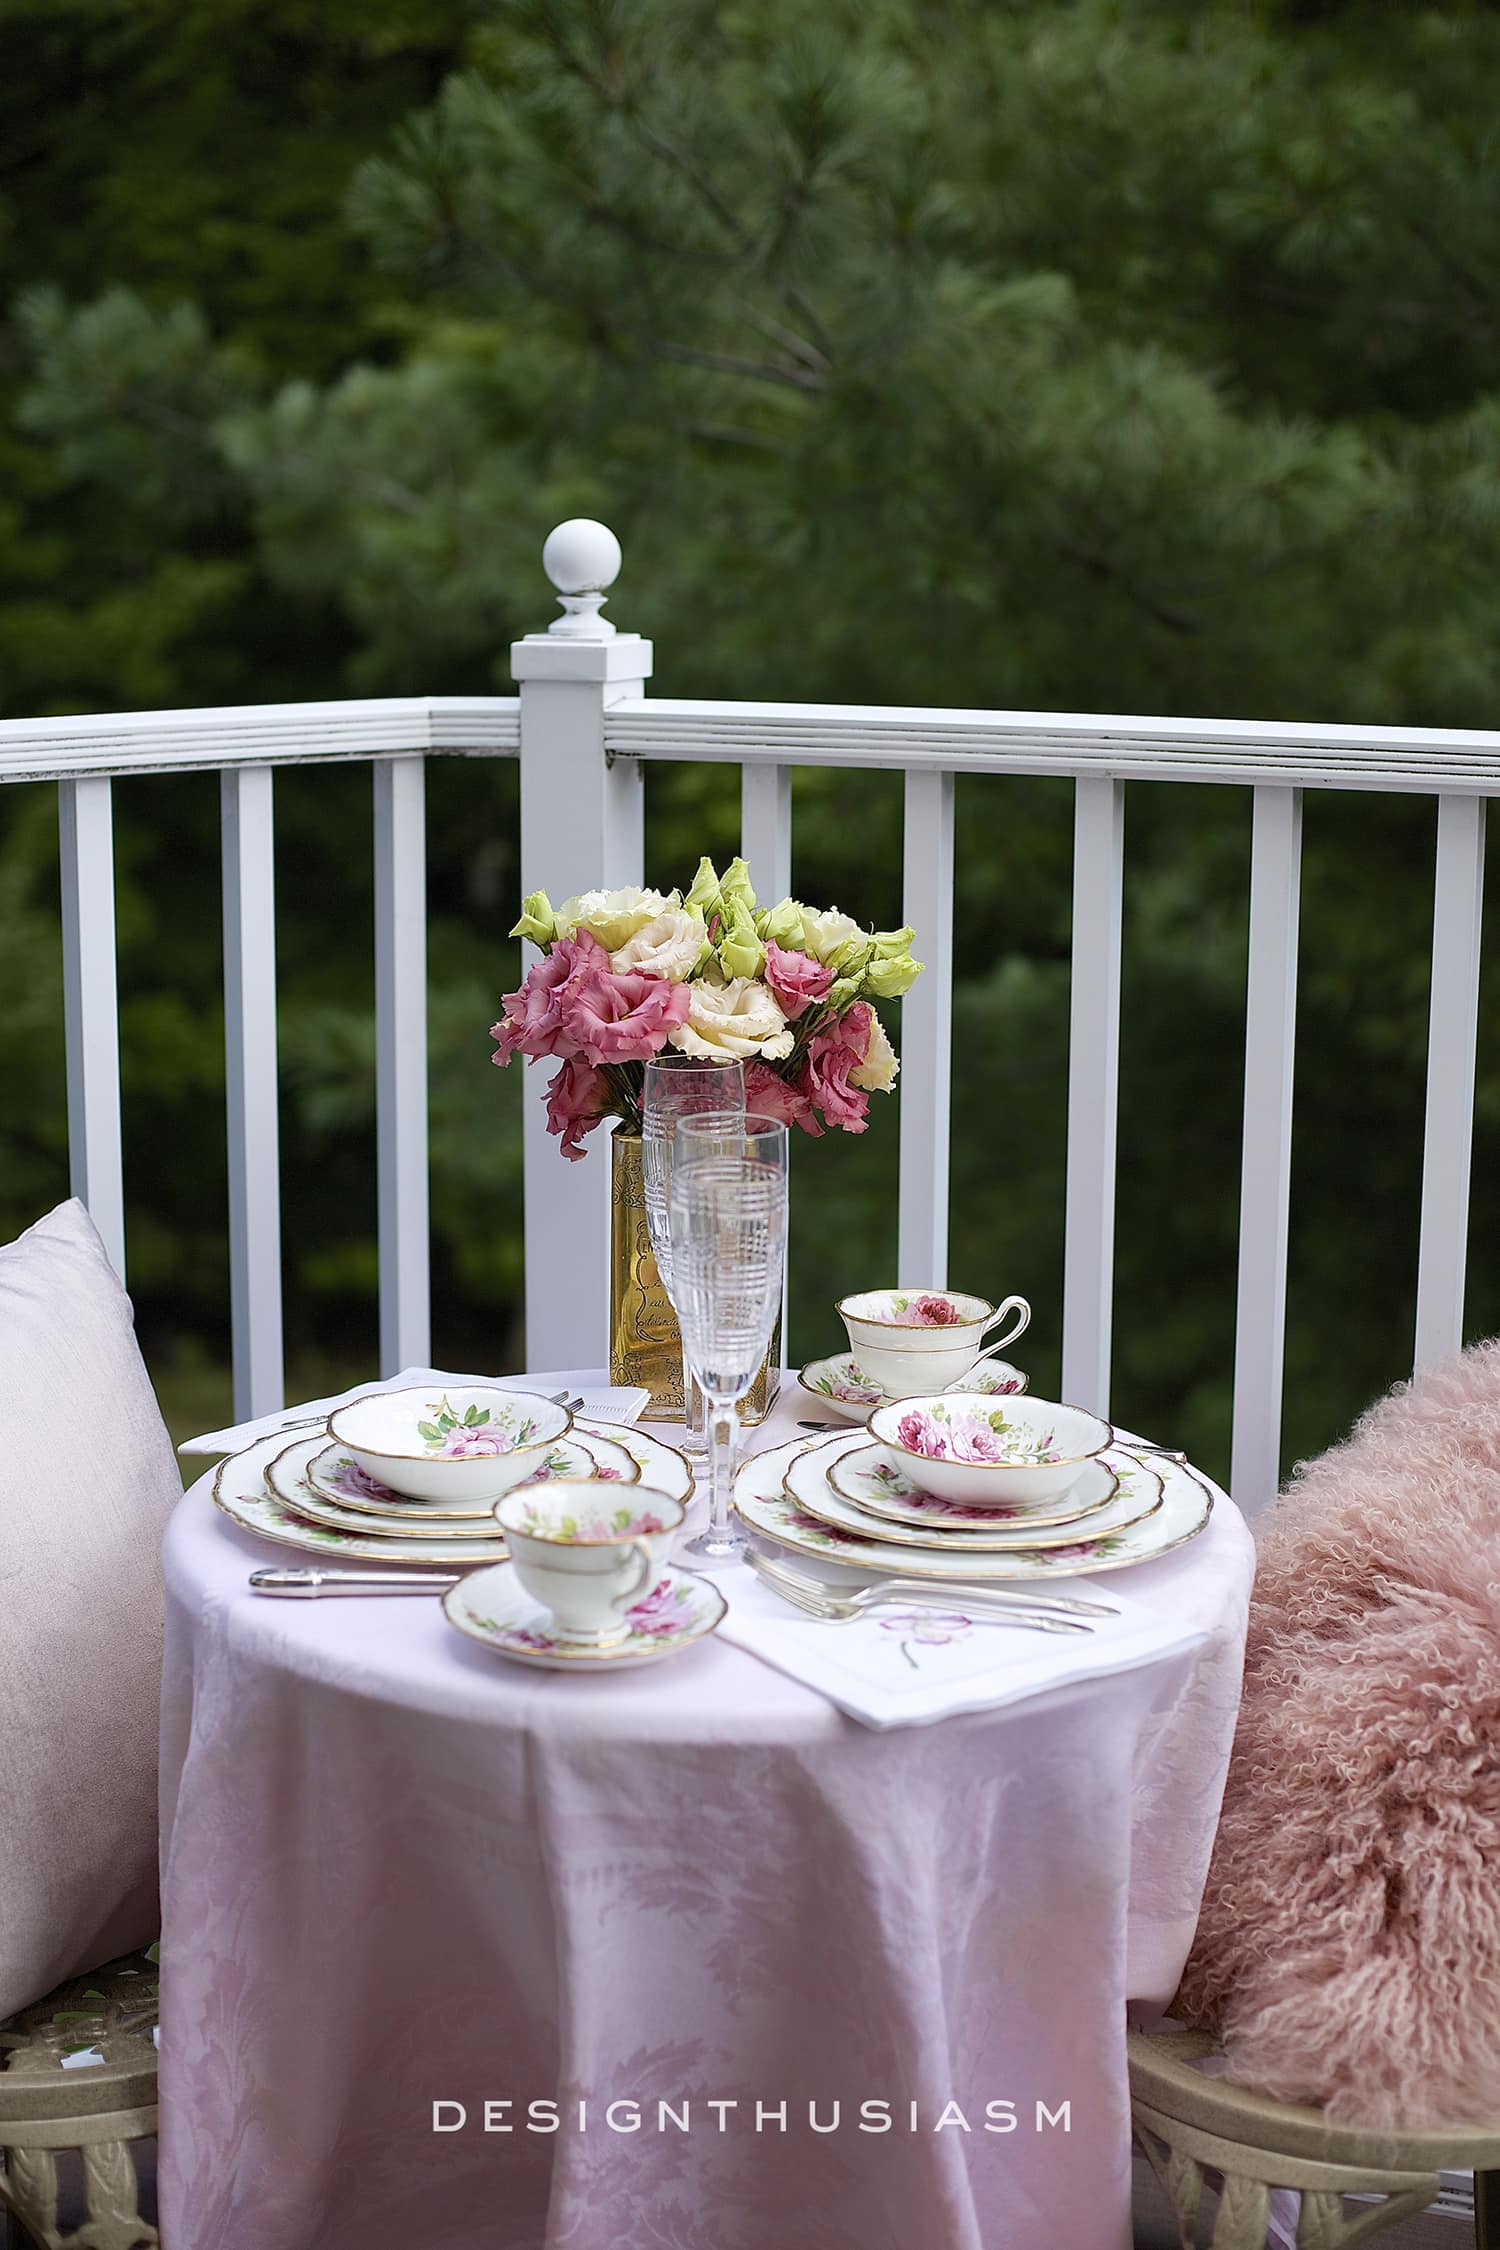 patio decor with pink bistro table setting